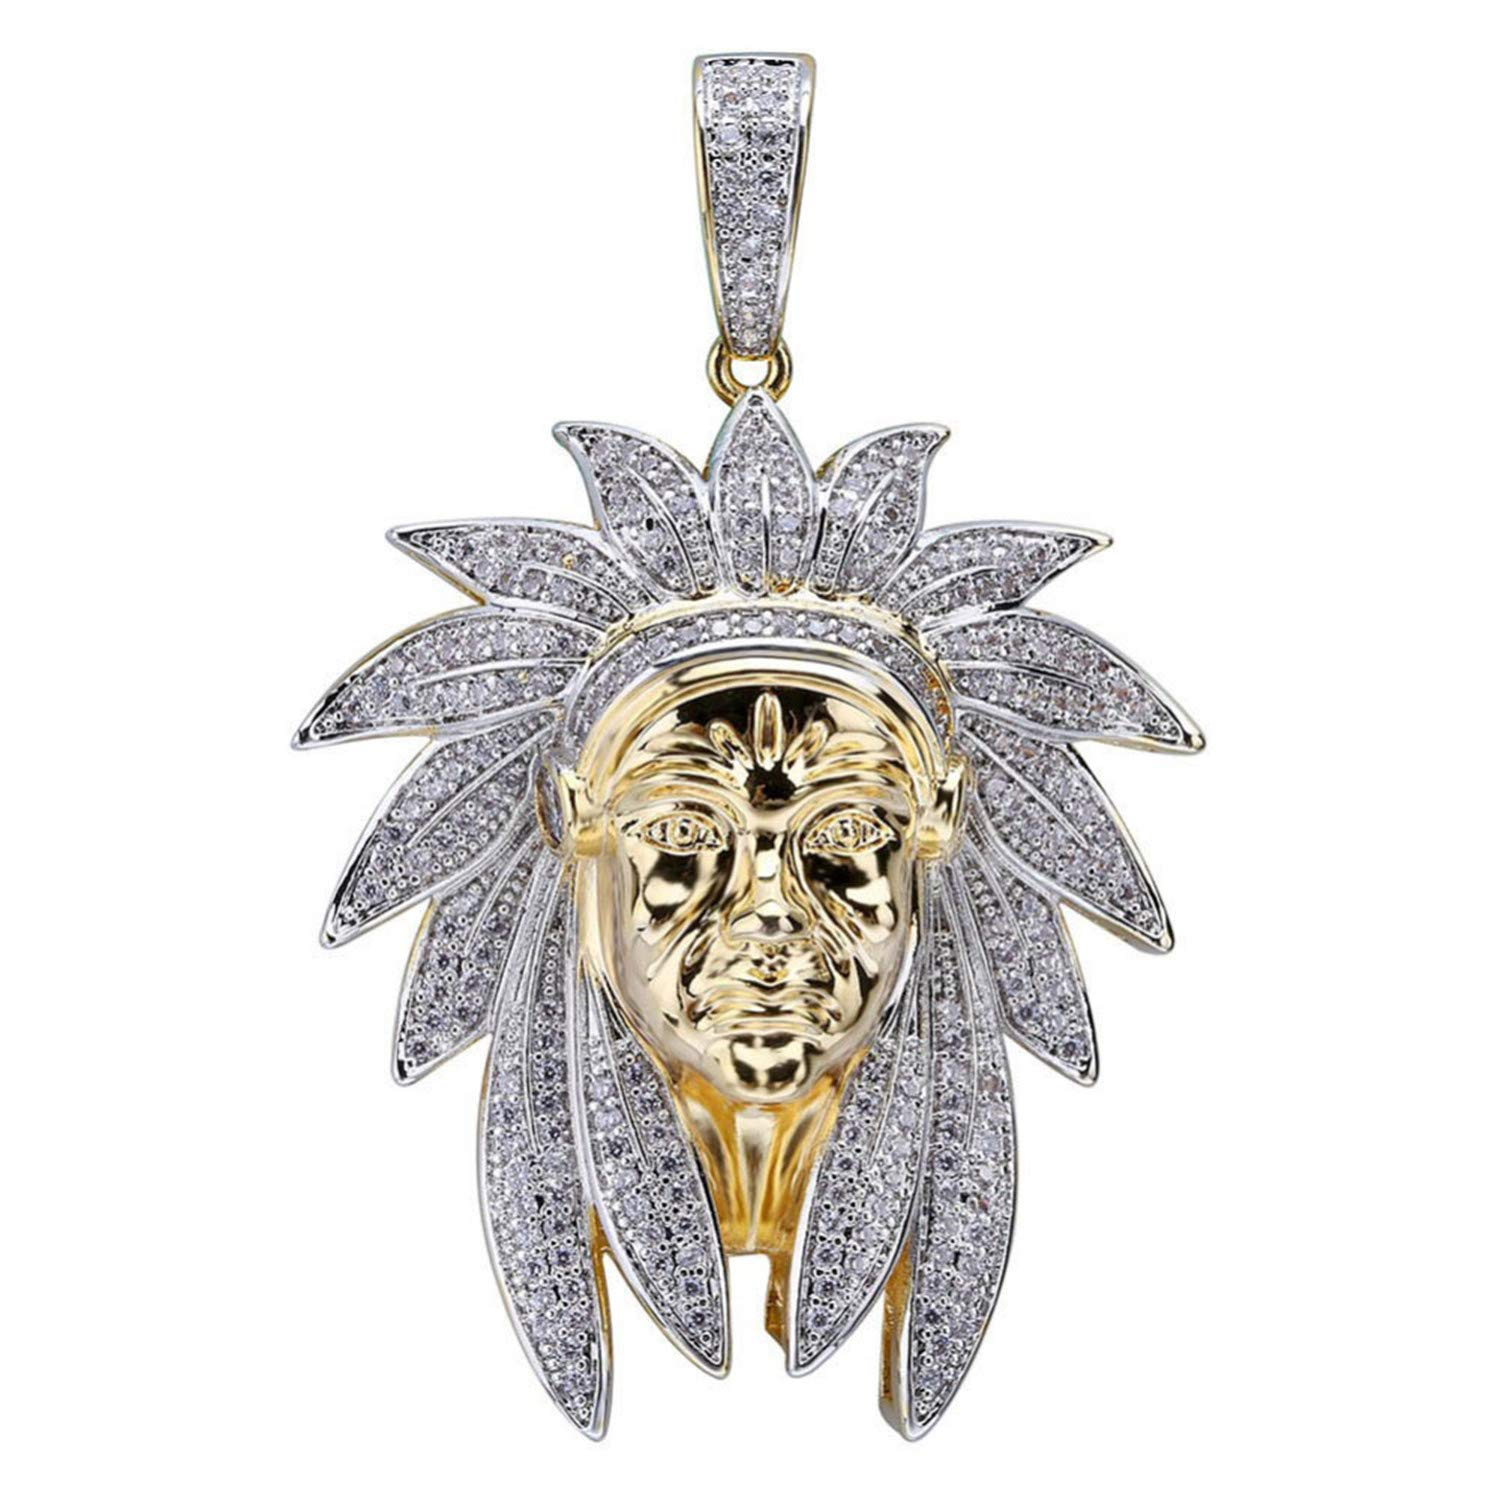 Iced Out Indian Chief Head Charm Pendant /& Necklaces Hip Hop Gold Silver Color Chains For Men Mask Indian Gifts Jewelry Native Cuban Chain 24inch